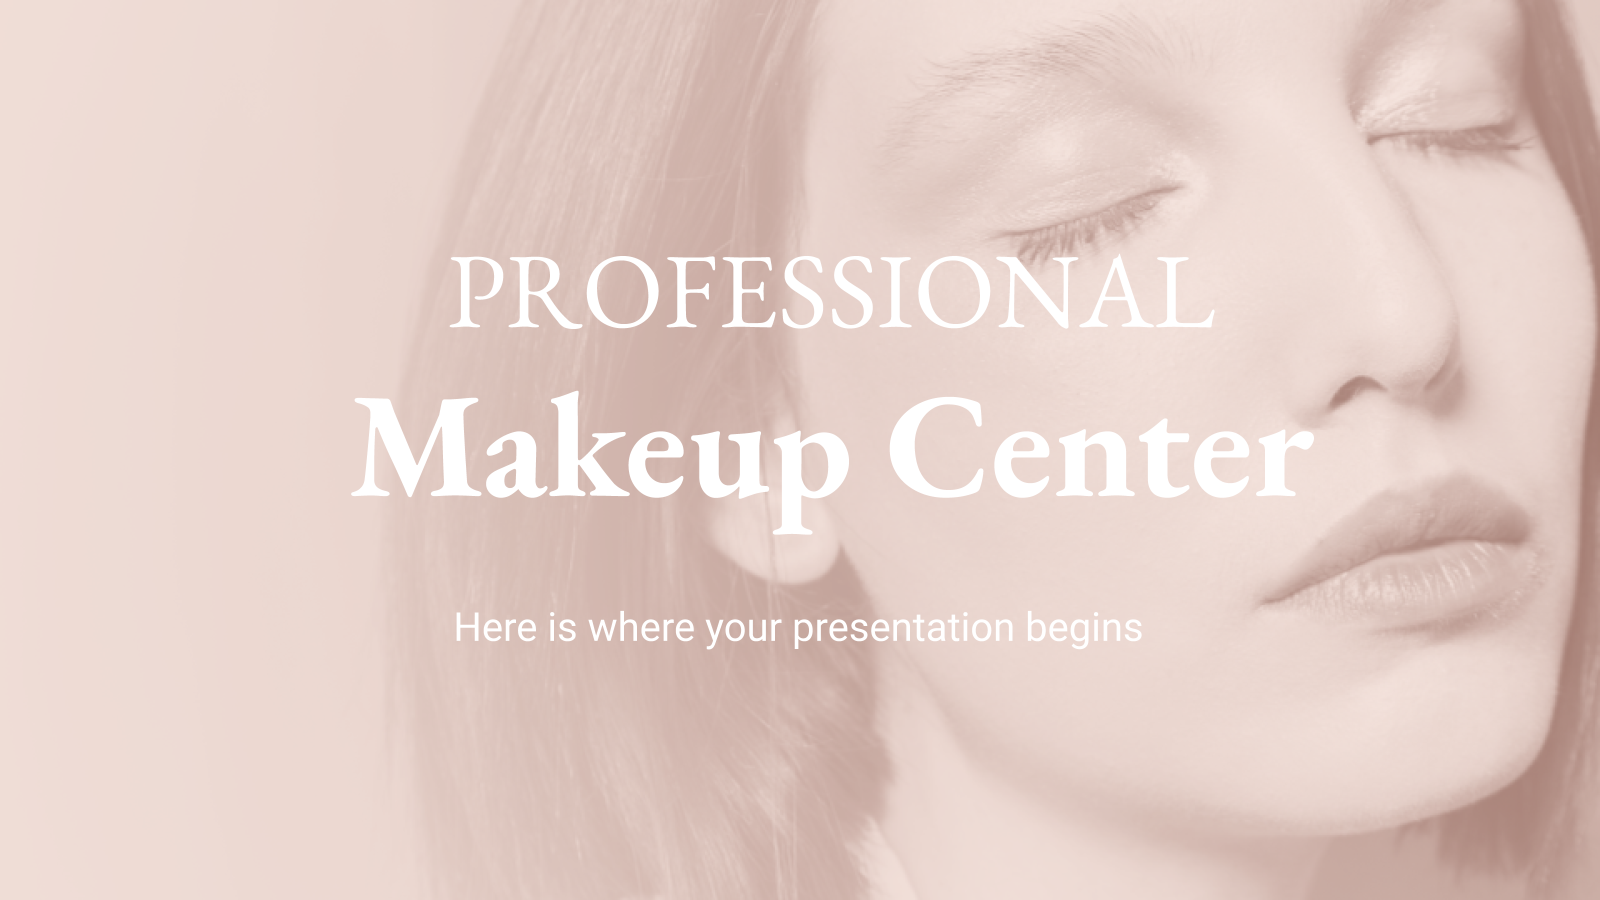 Professional Makeup Center presentation template